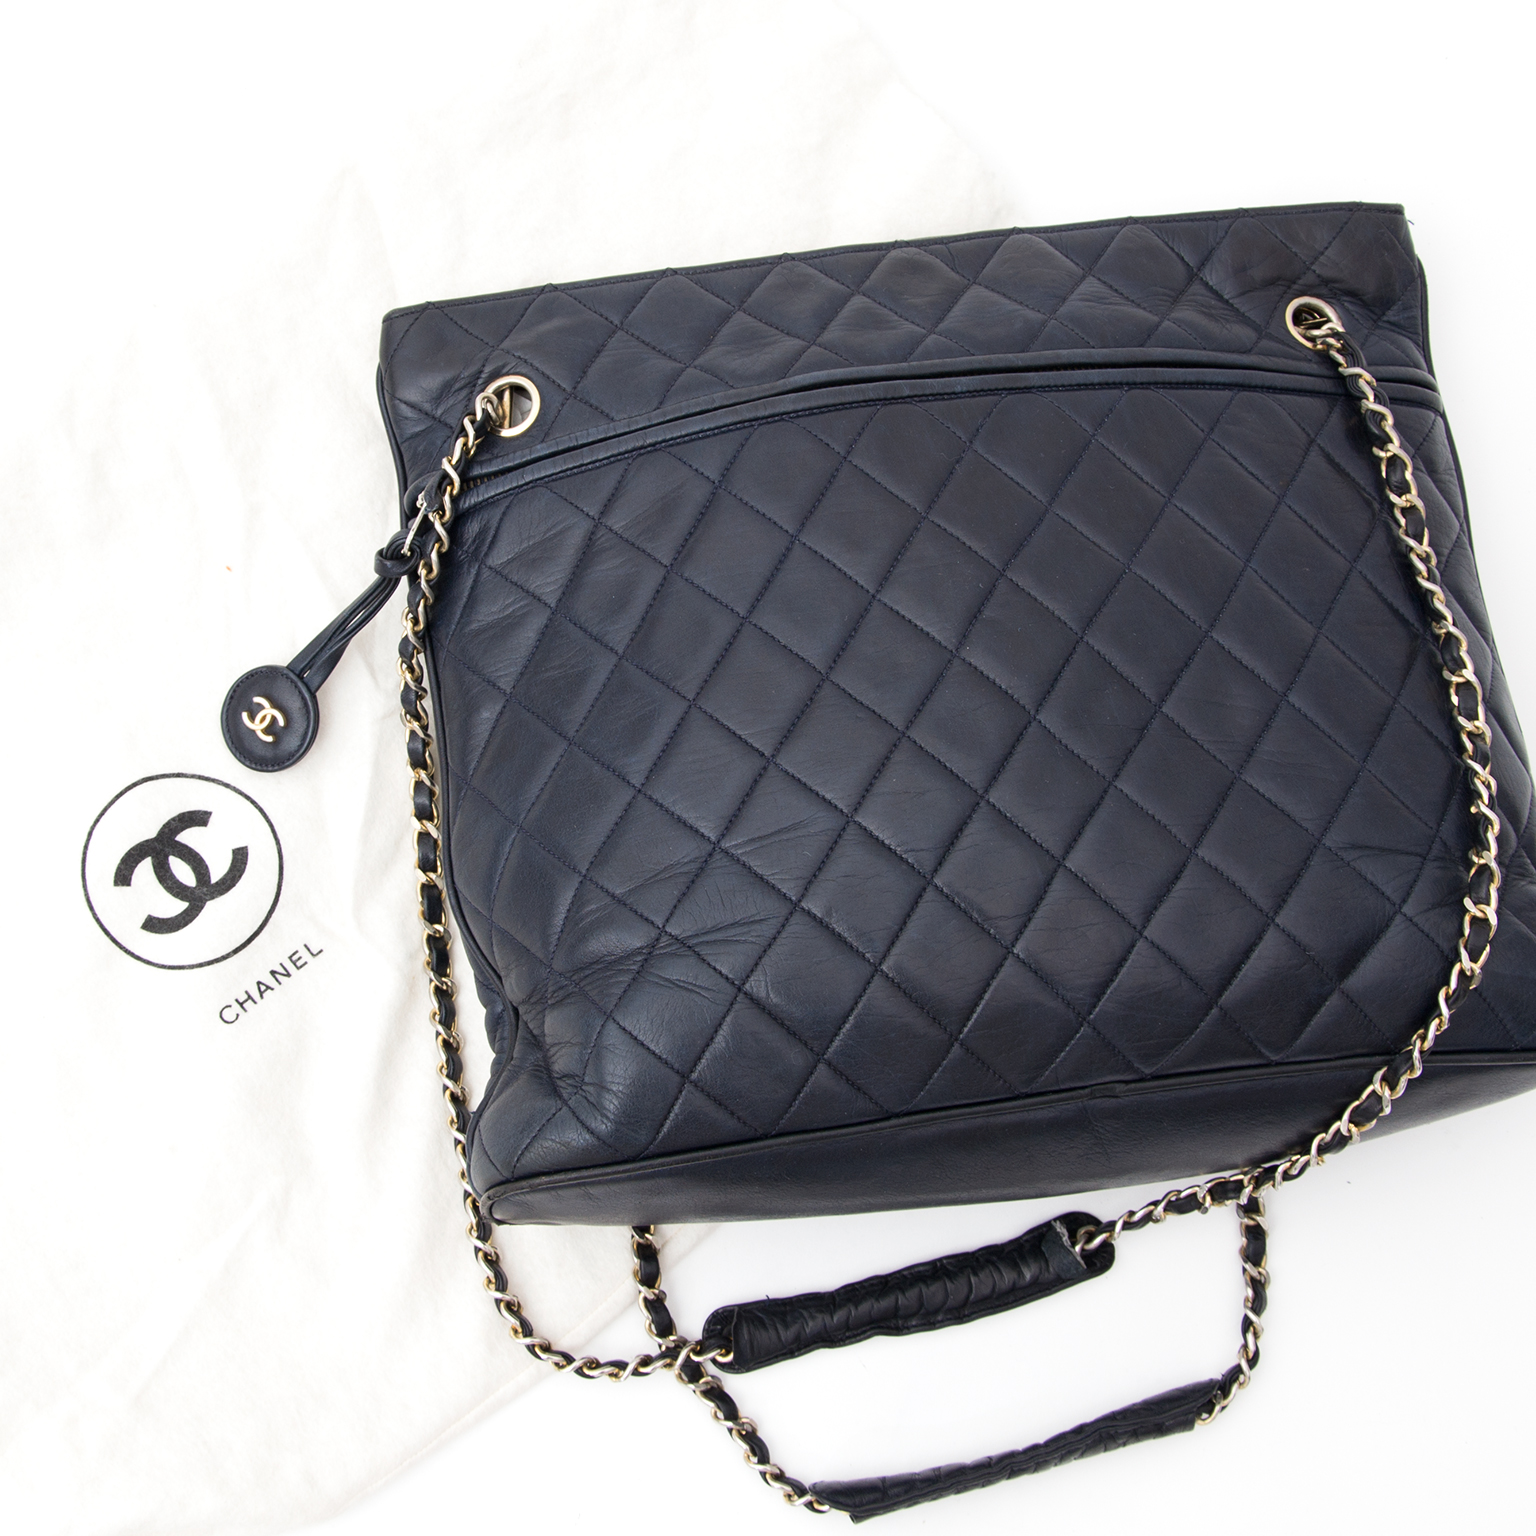 5e8aa5951c04 Buy authentic secondhand Chanel bags at the right price Chanel Navy Quilted  Lambskin Tote This is a real vintage find! A Chanel tote with